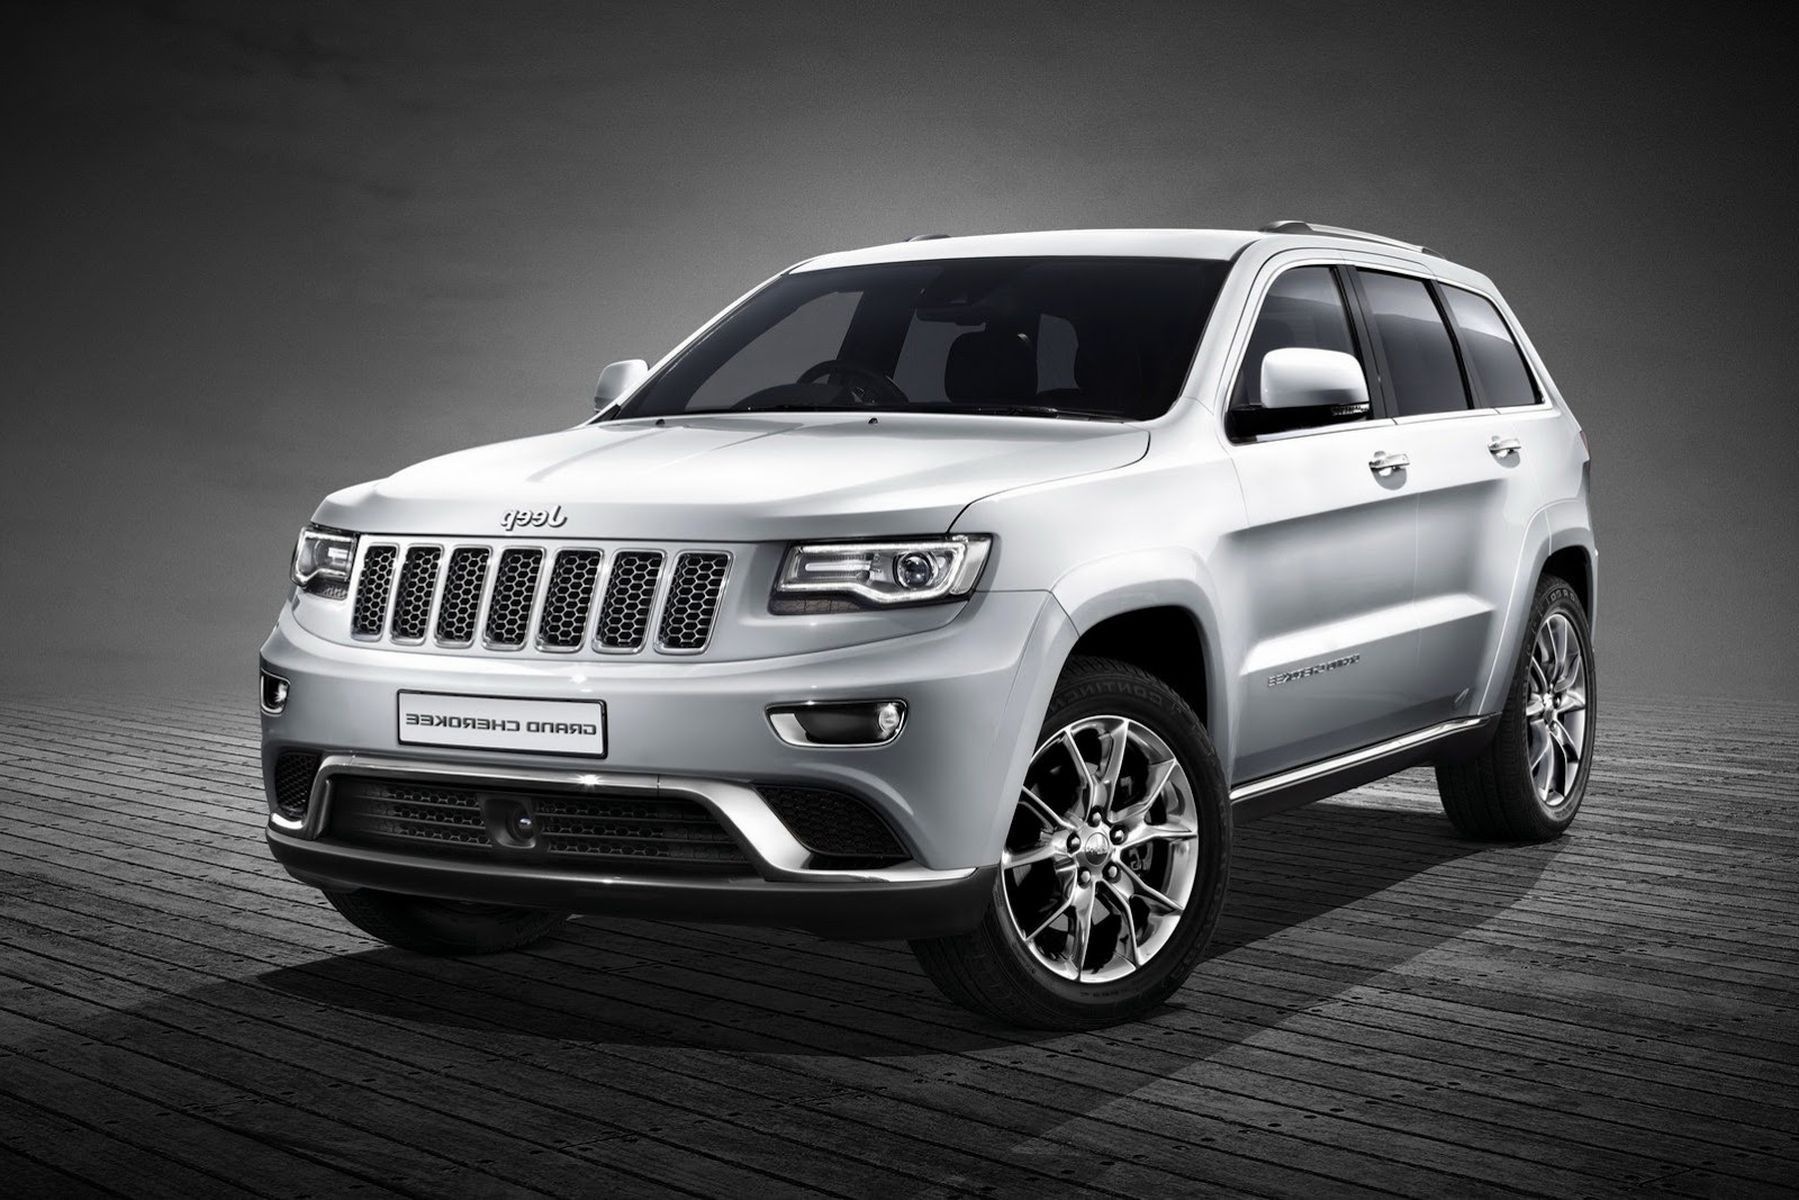 2020 Grand Cherokee Srt Concept Redesign And Review Jeep Grand Cherokee Jeep Grand Cherokee Models Cherokee Car